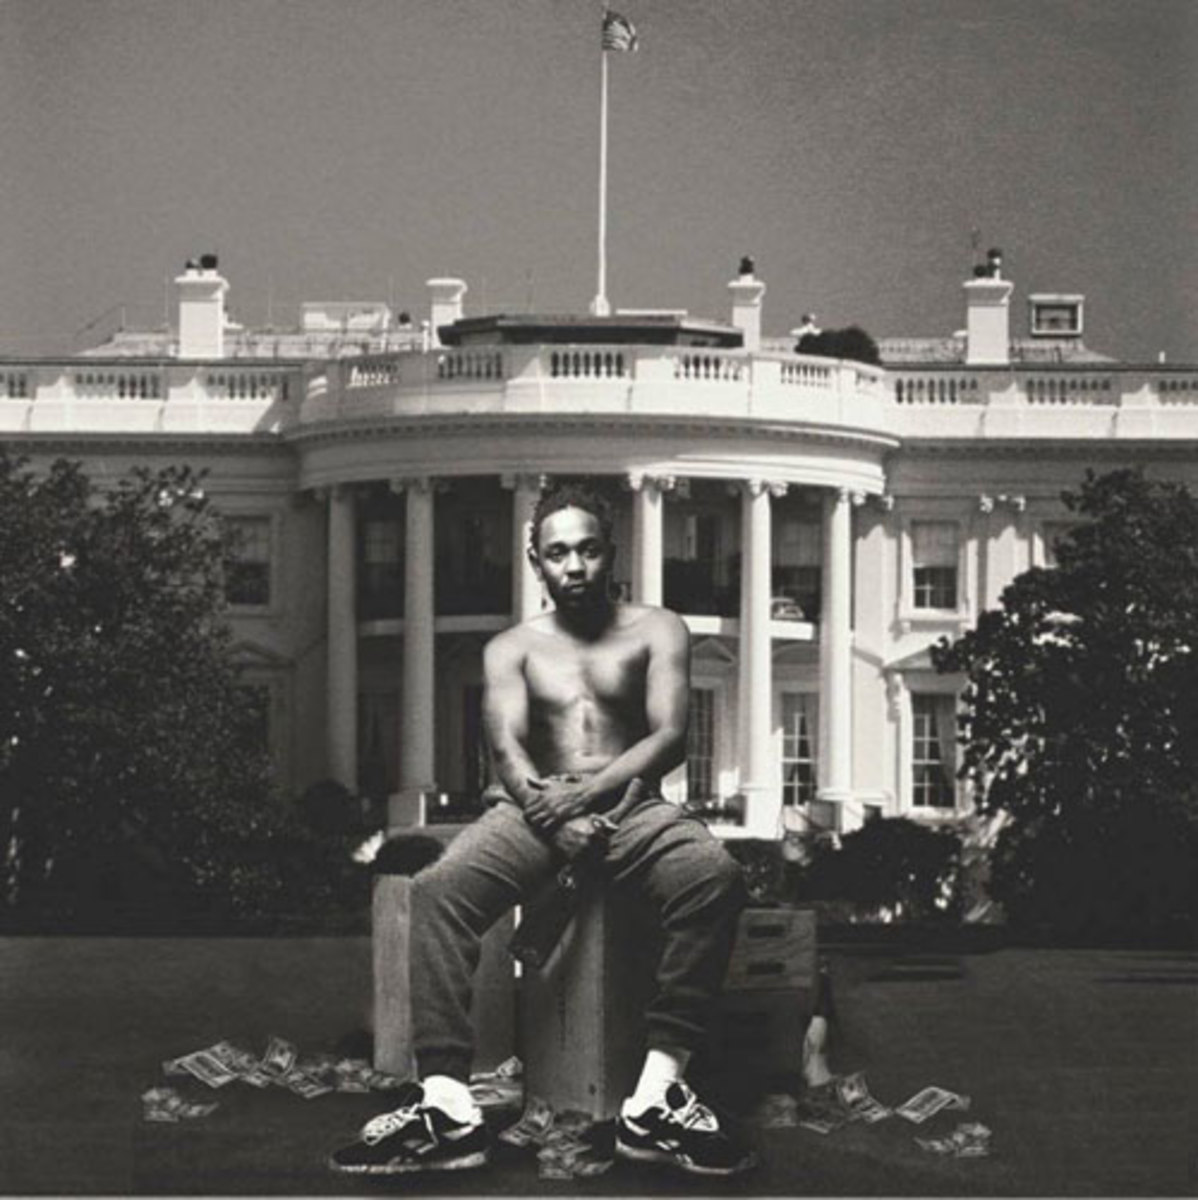 kendrick-lamar-at-white-house.jpg